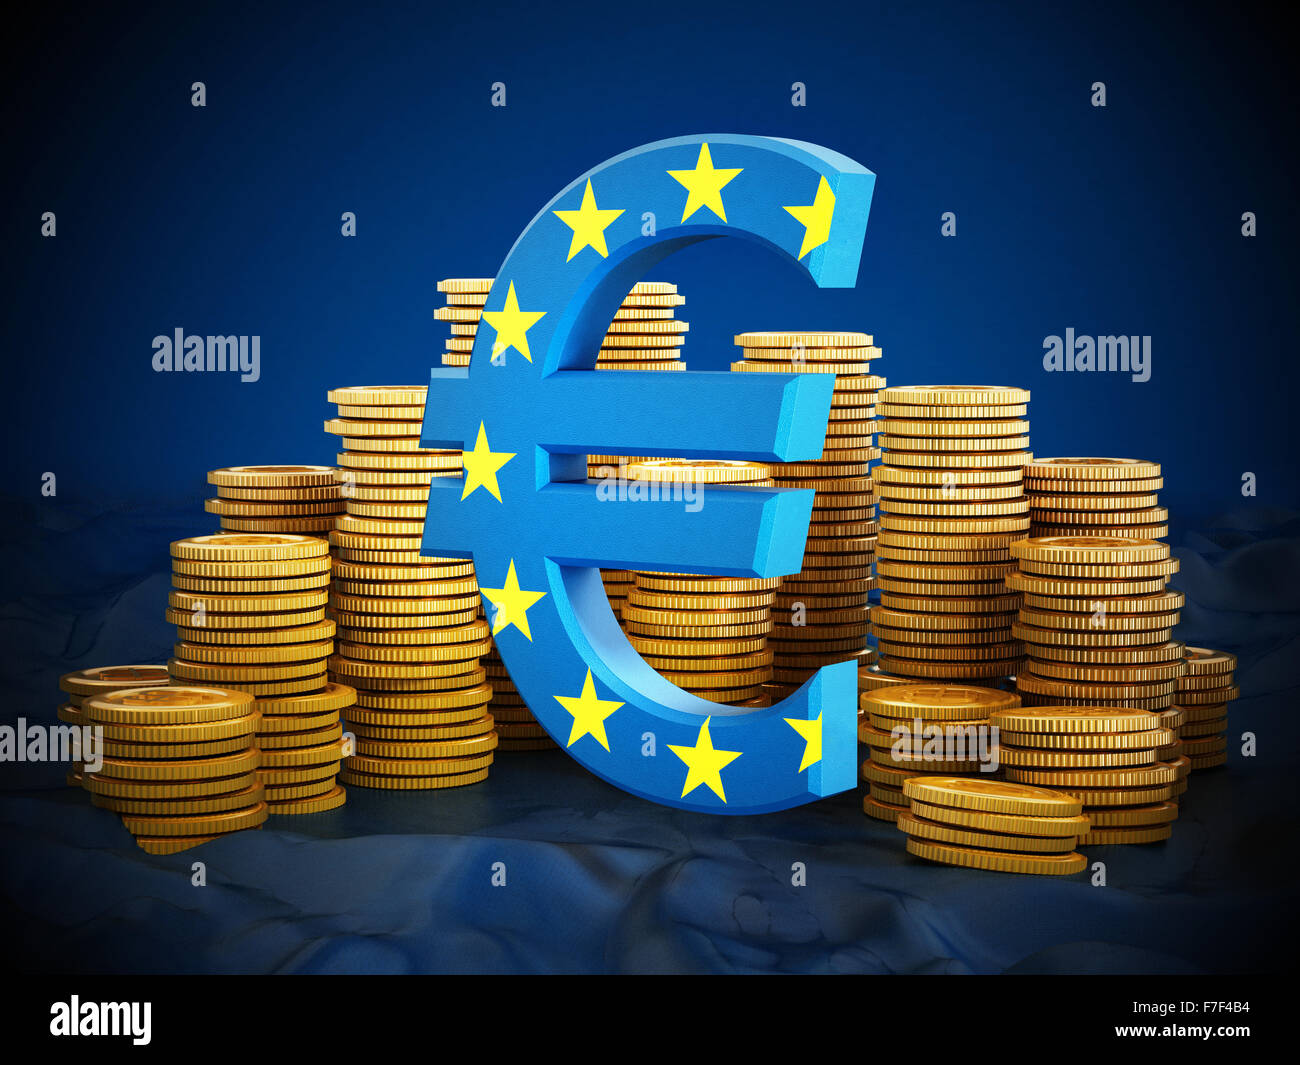 Euro symbol and gold coins stack on blue background. - Stock Image